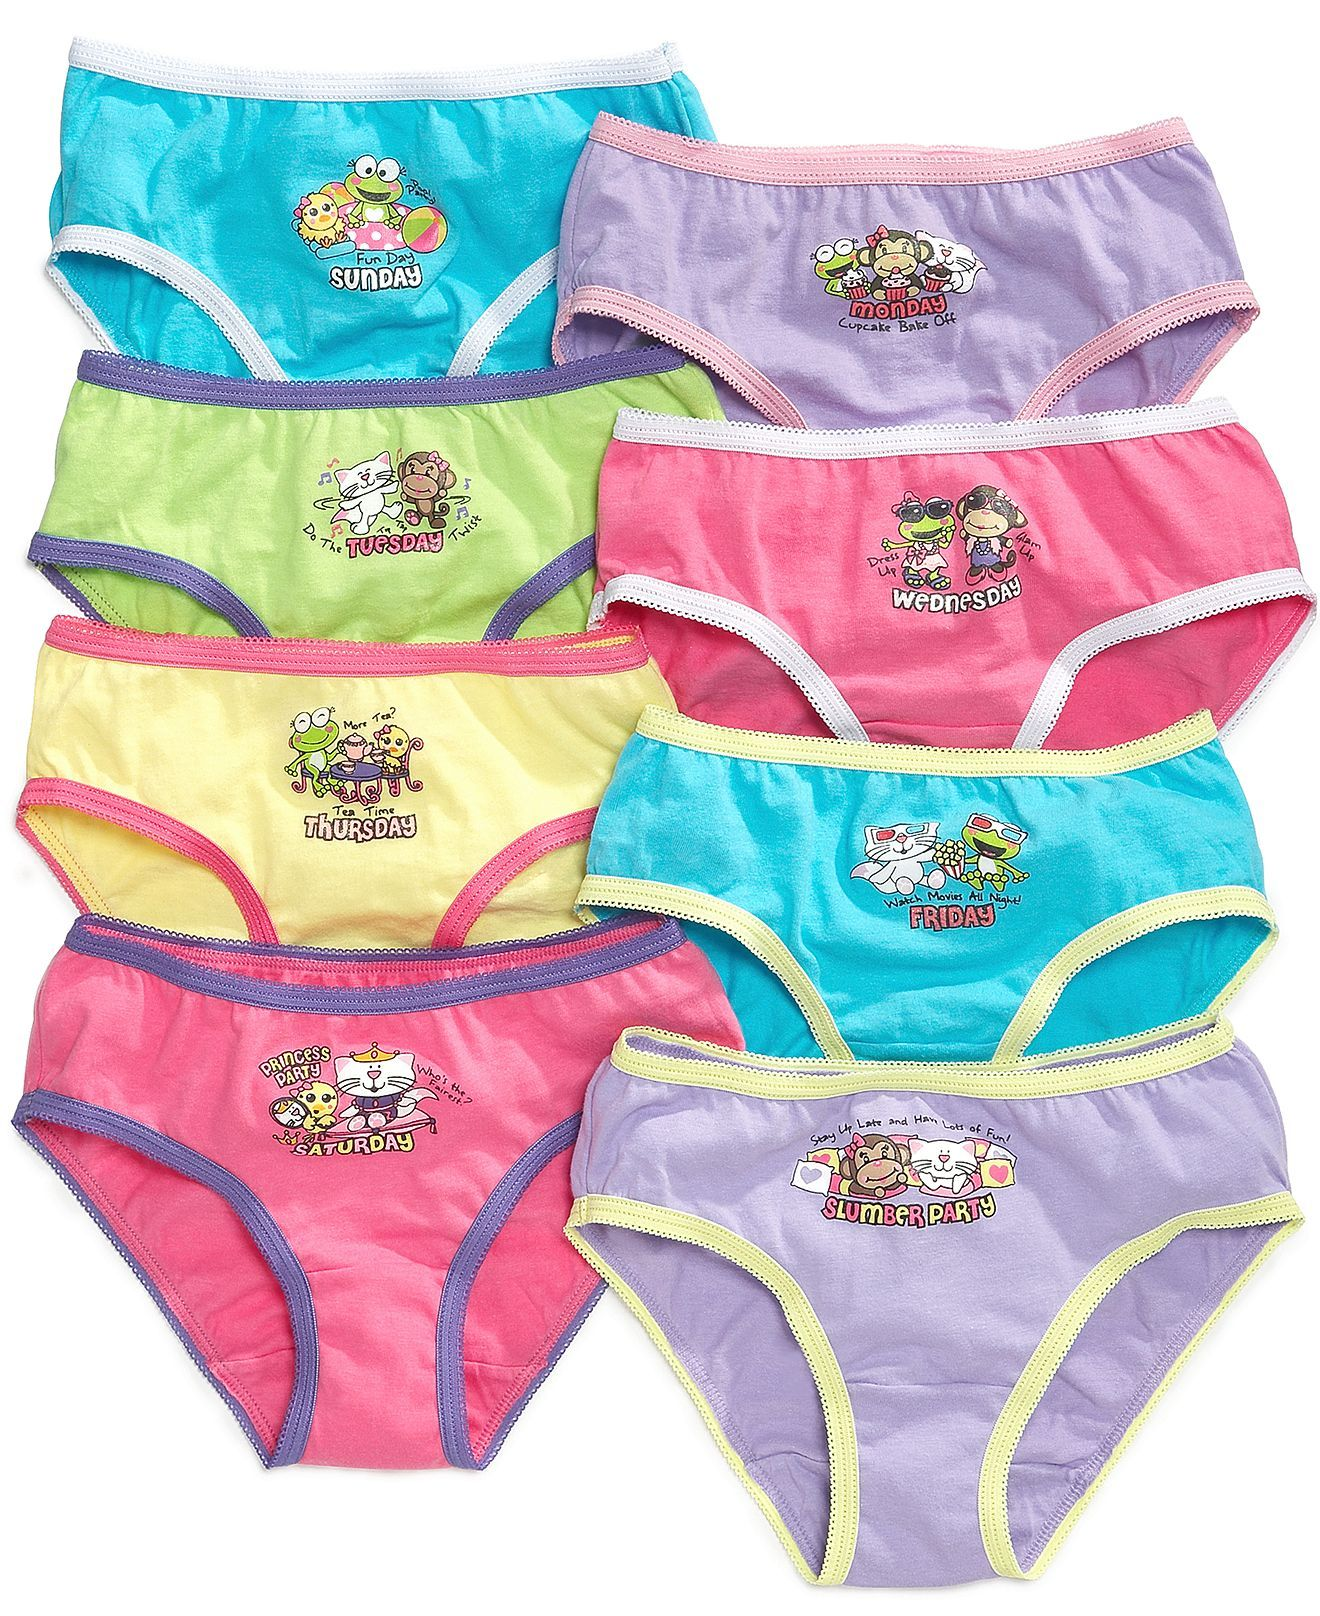 db2fb3dd0e69 So Jenni Kids Underwear, Girls 8-Pack Days of the Week - Kids - Macy's